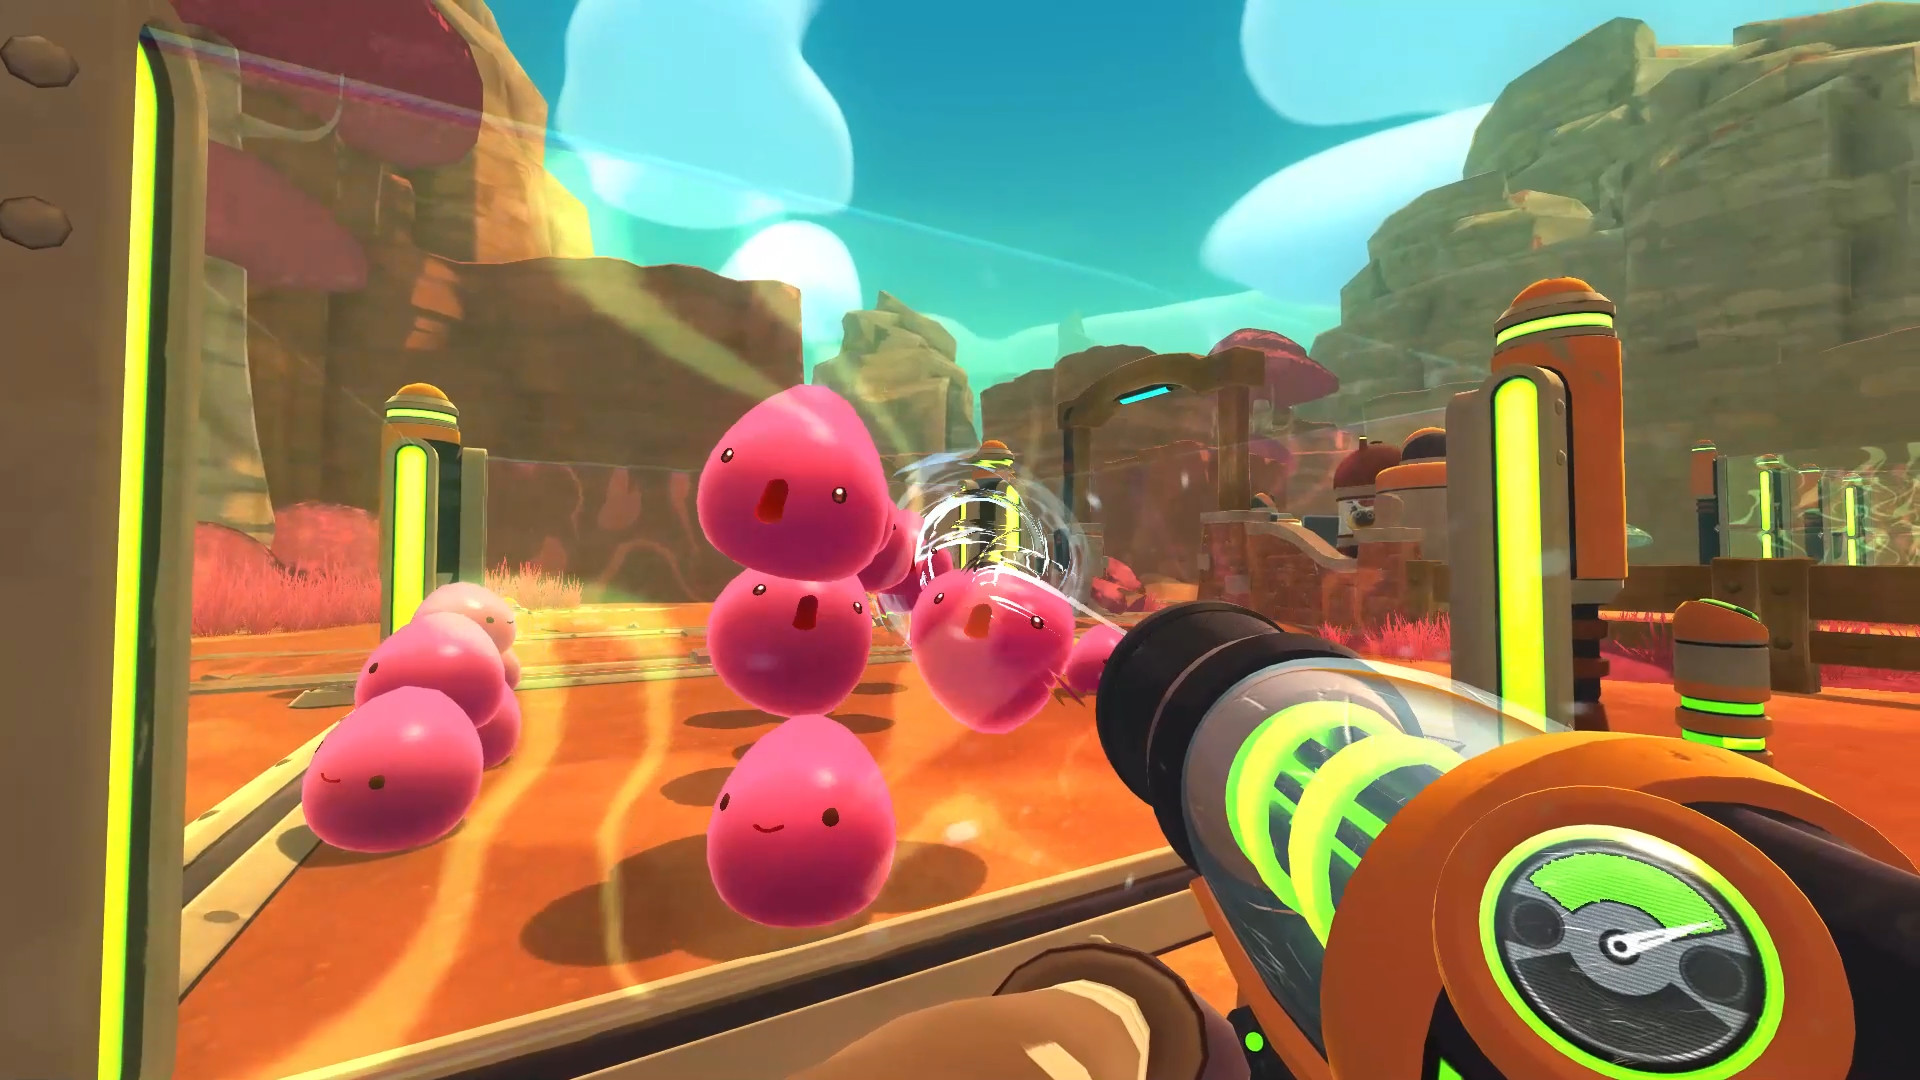 Find the best computers for Slime Rancher